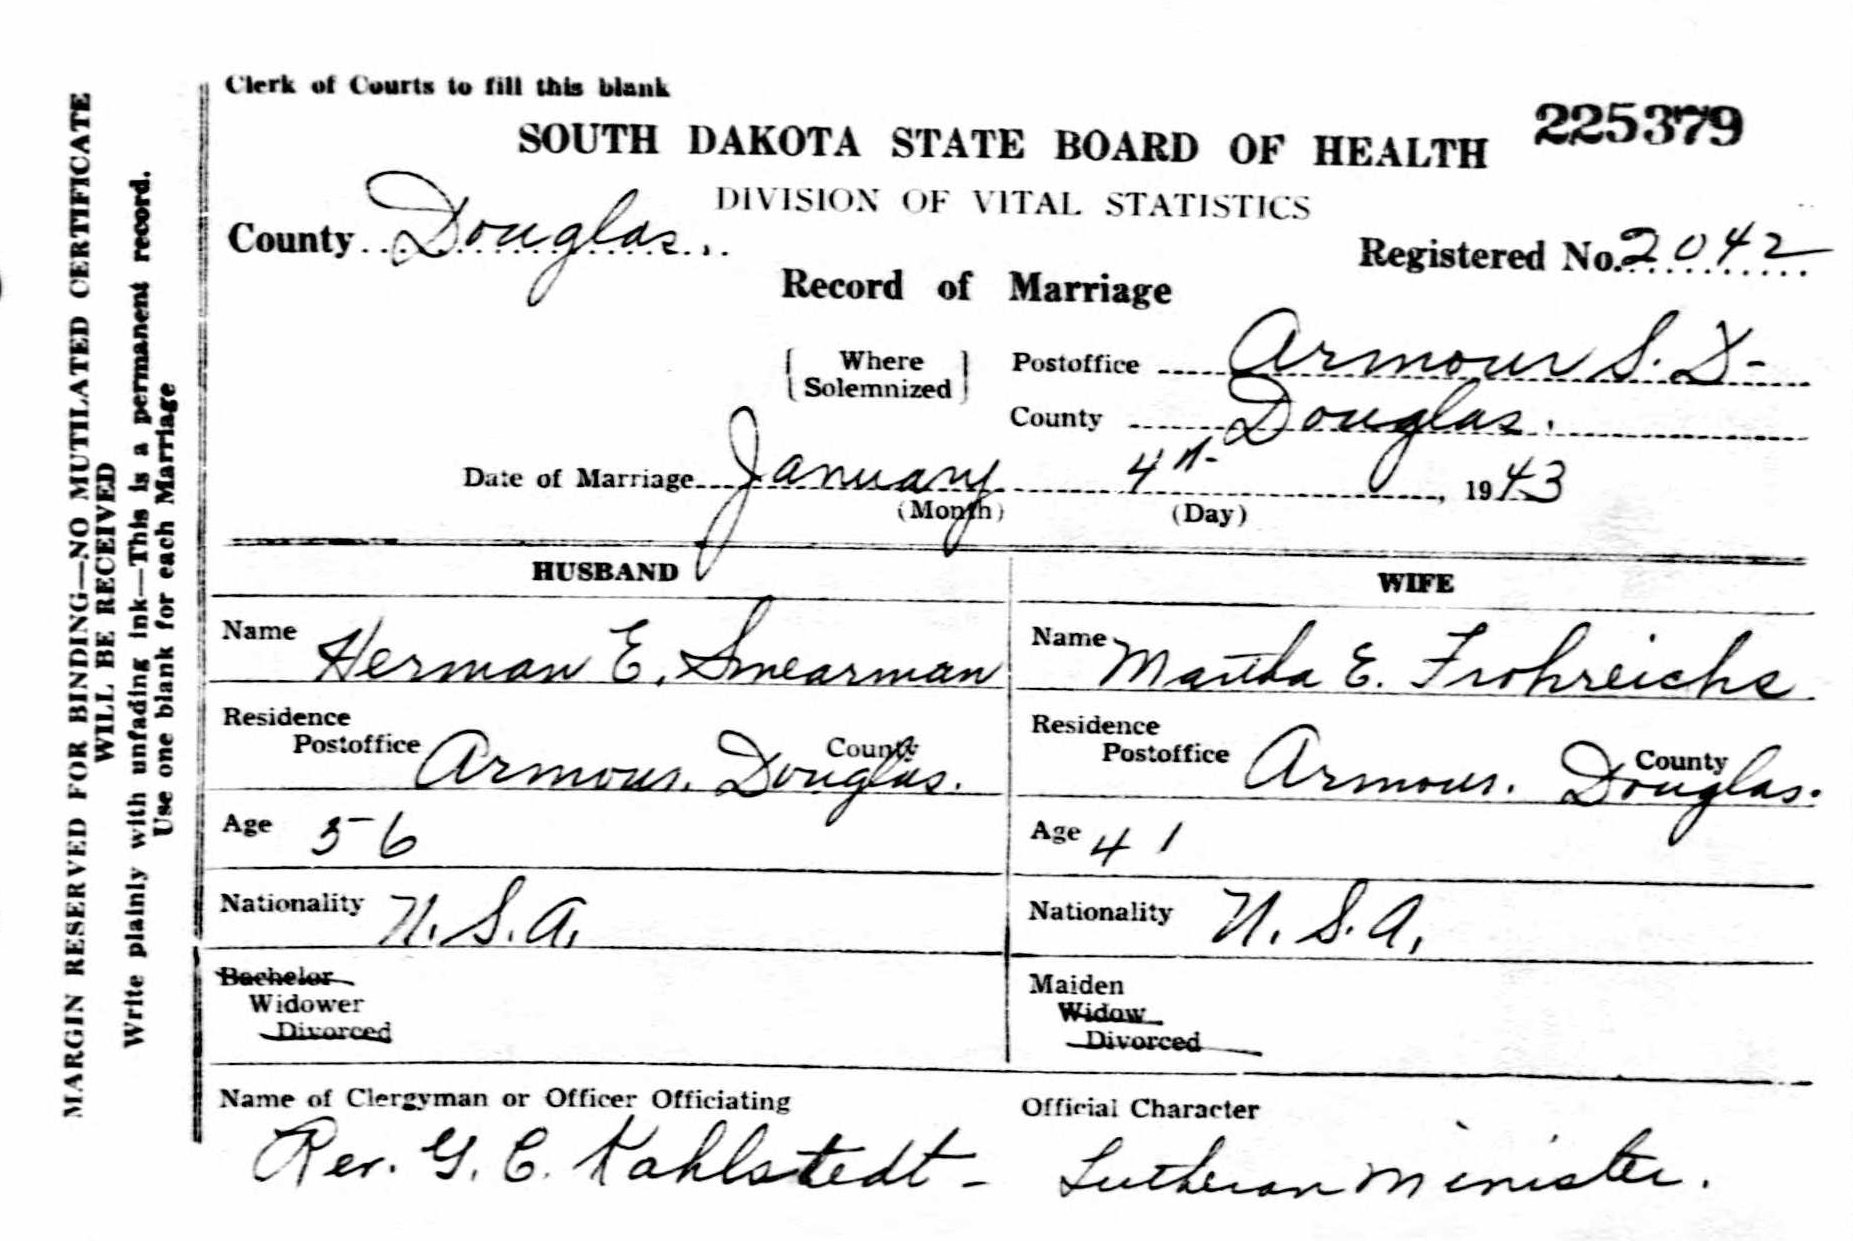 Friede abrahamson genealogy site person page marriage record of herman smearman and martha frohreich 04 jan 1943 armour douglas sd 1betcityfo Gallery